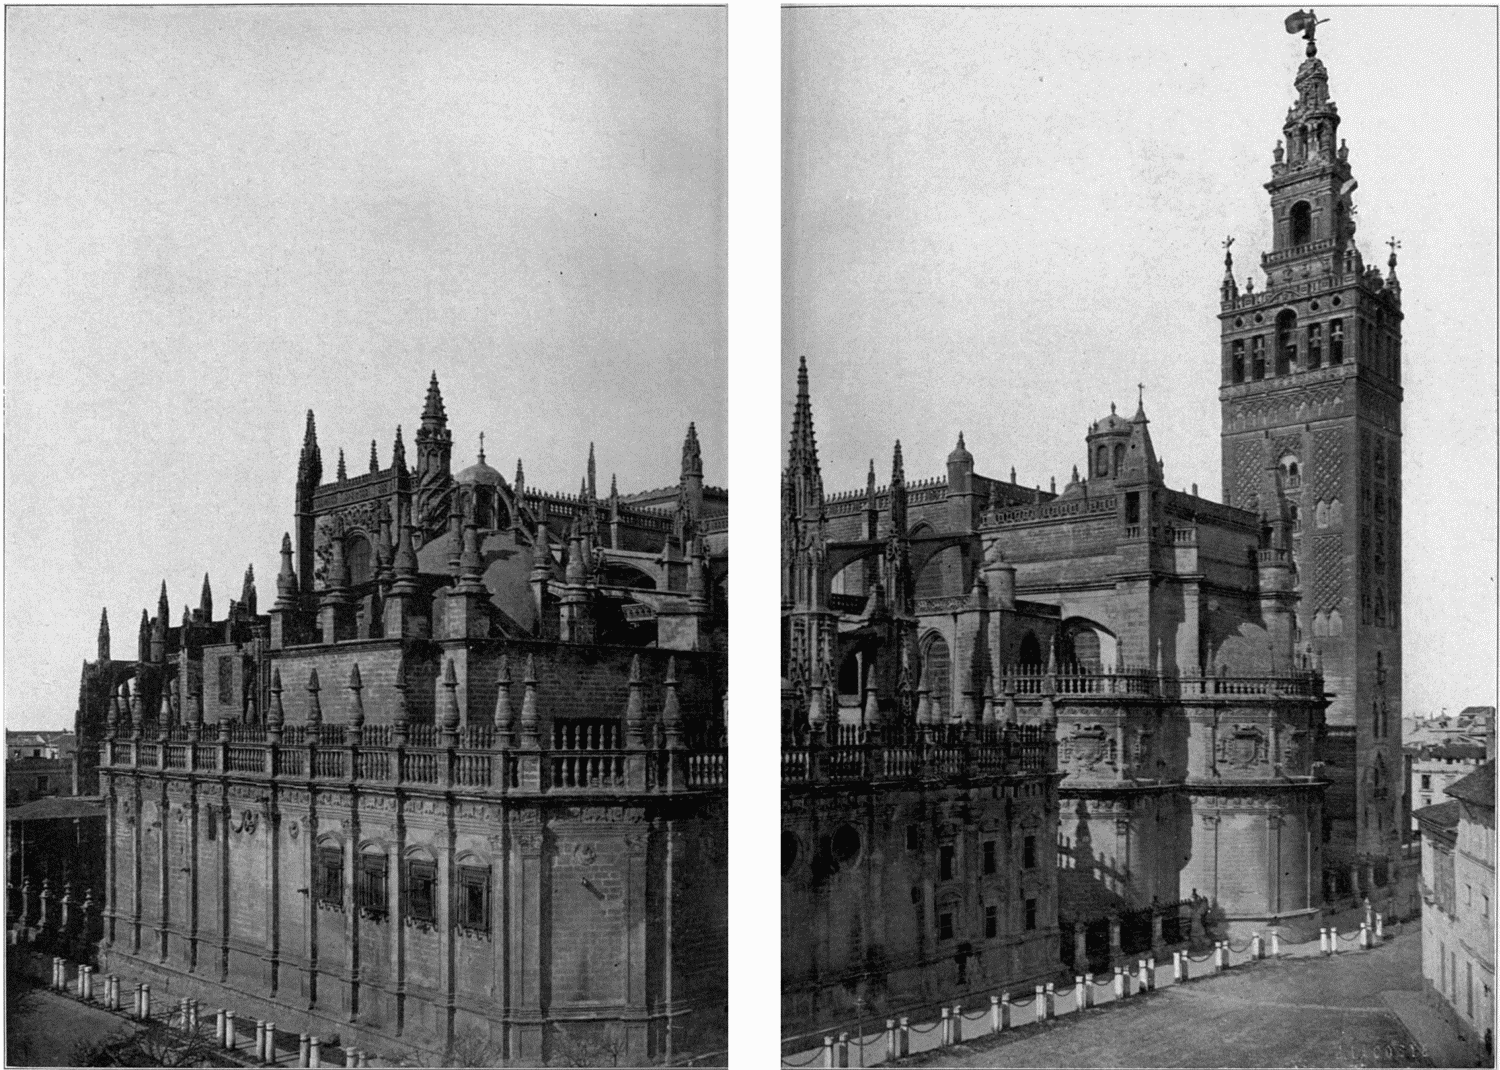 The project gutenberg ebook of cathedrals of spain by john a john cathedral of seville and the giralda fandeluxe Gallery